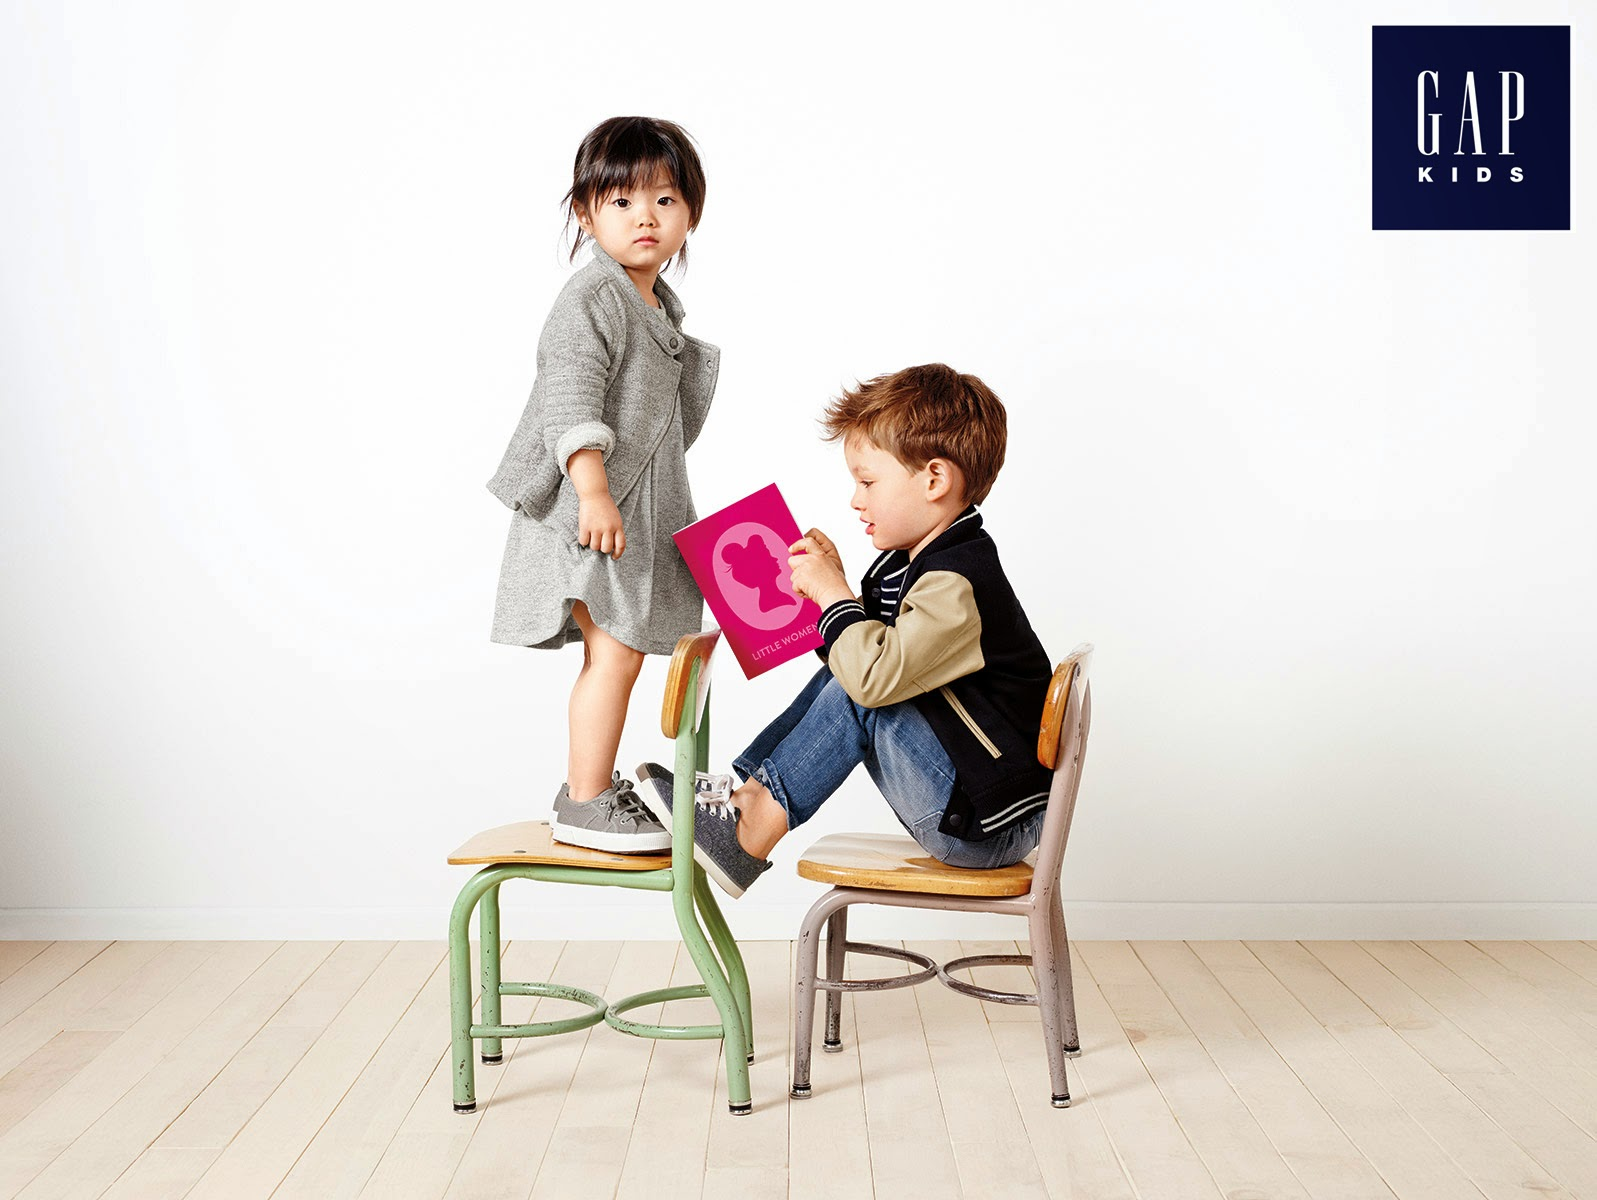 Baby gap kids photo contest Celebrity Babies and Kids Moms Babies m